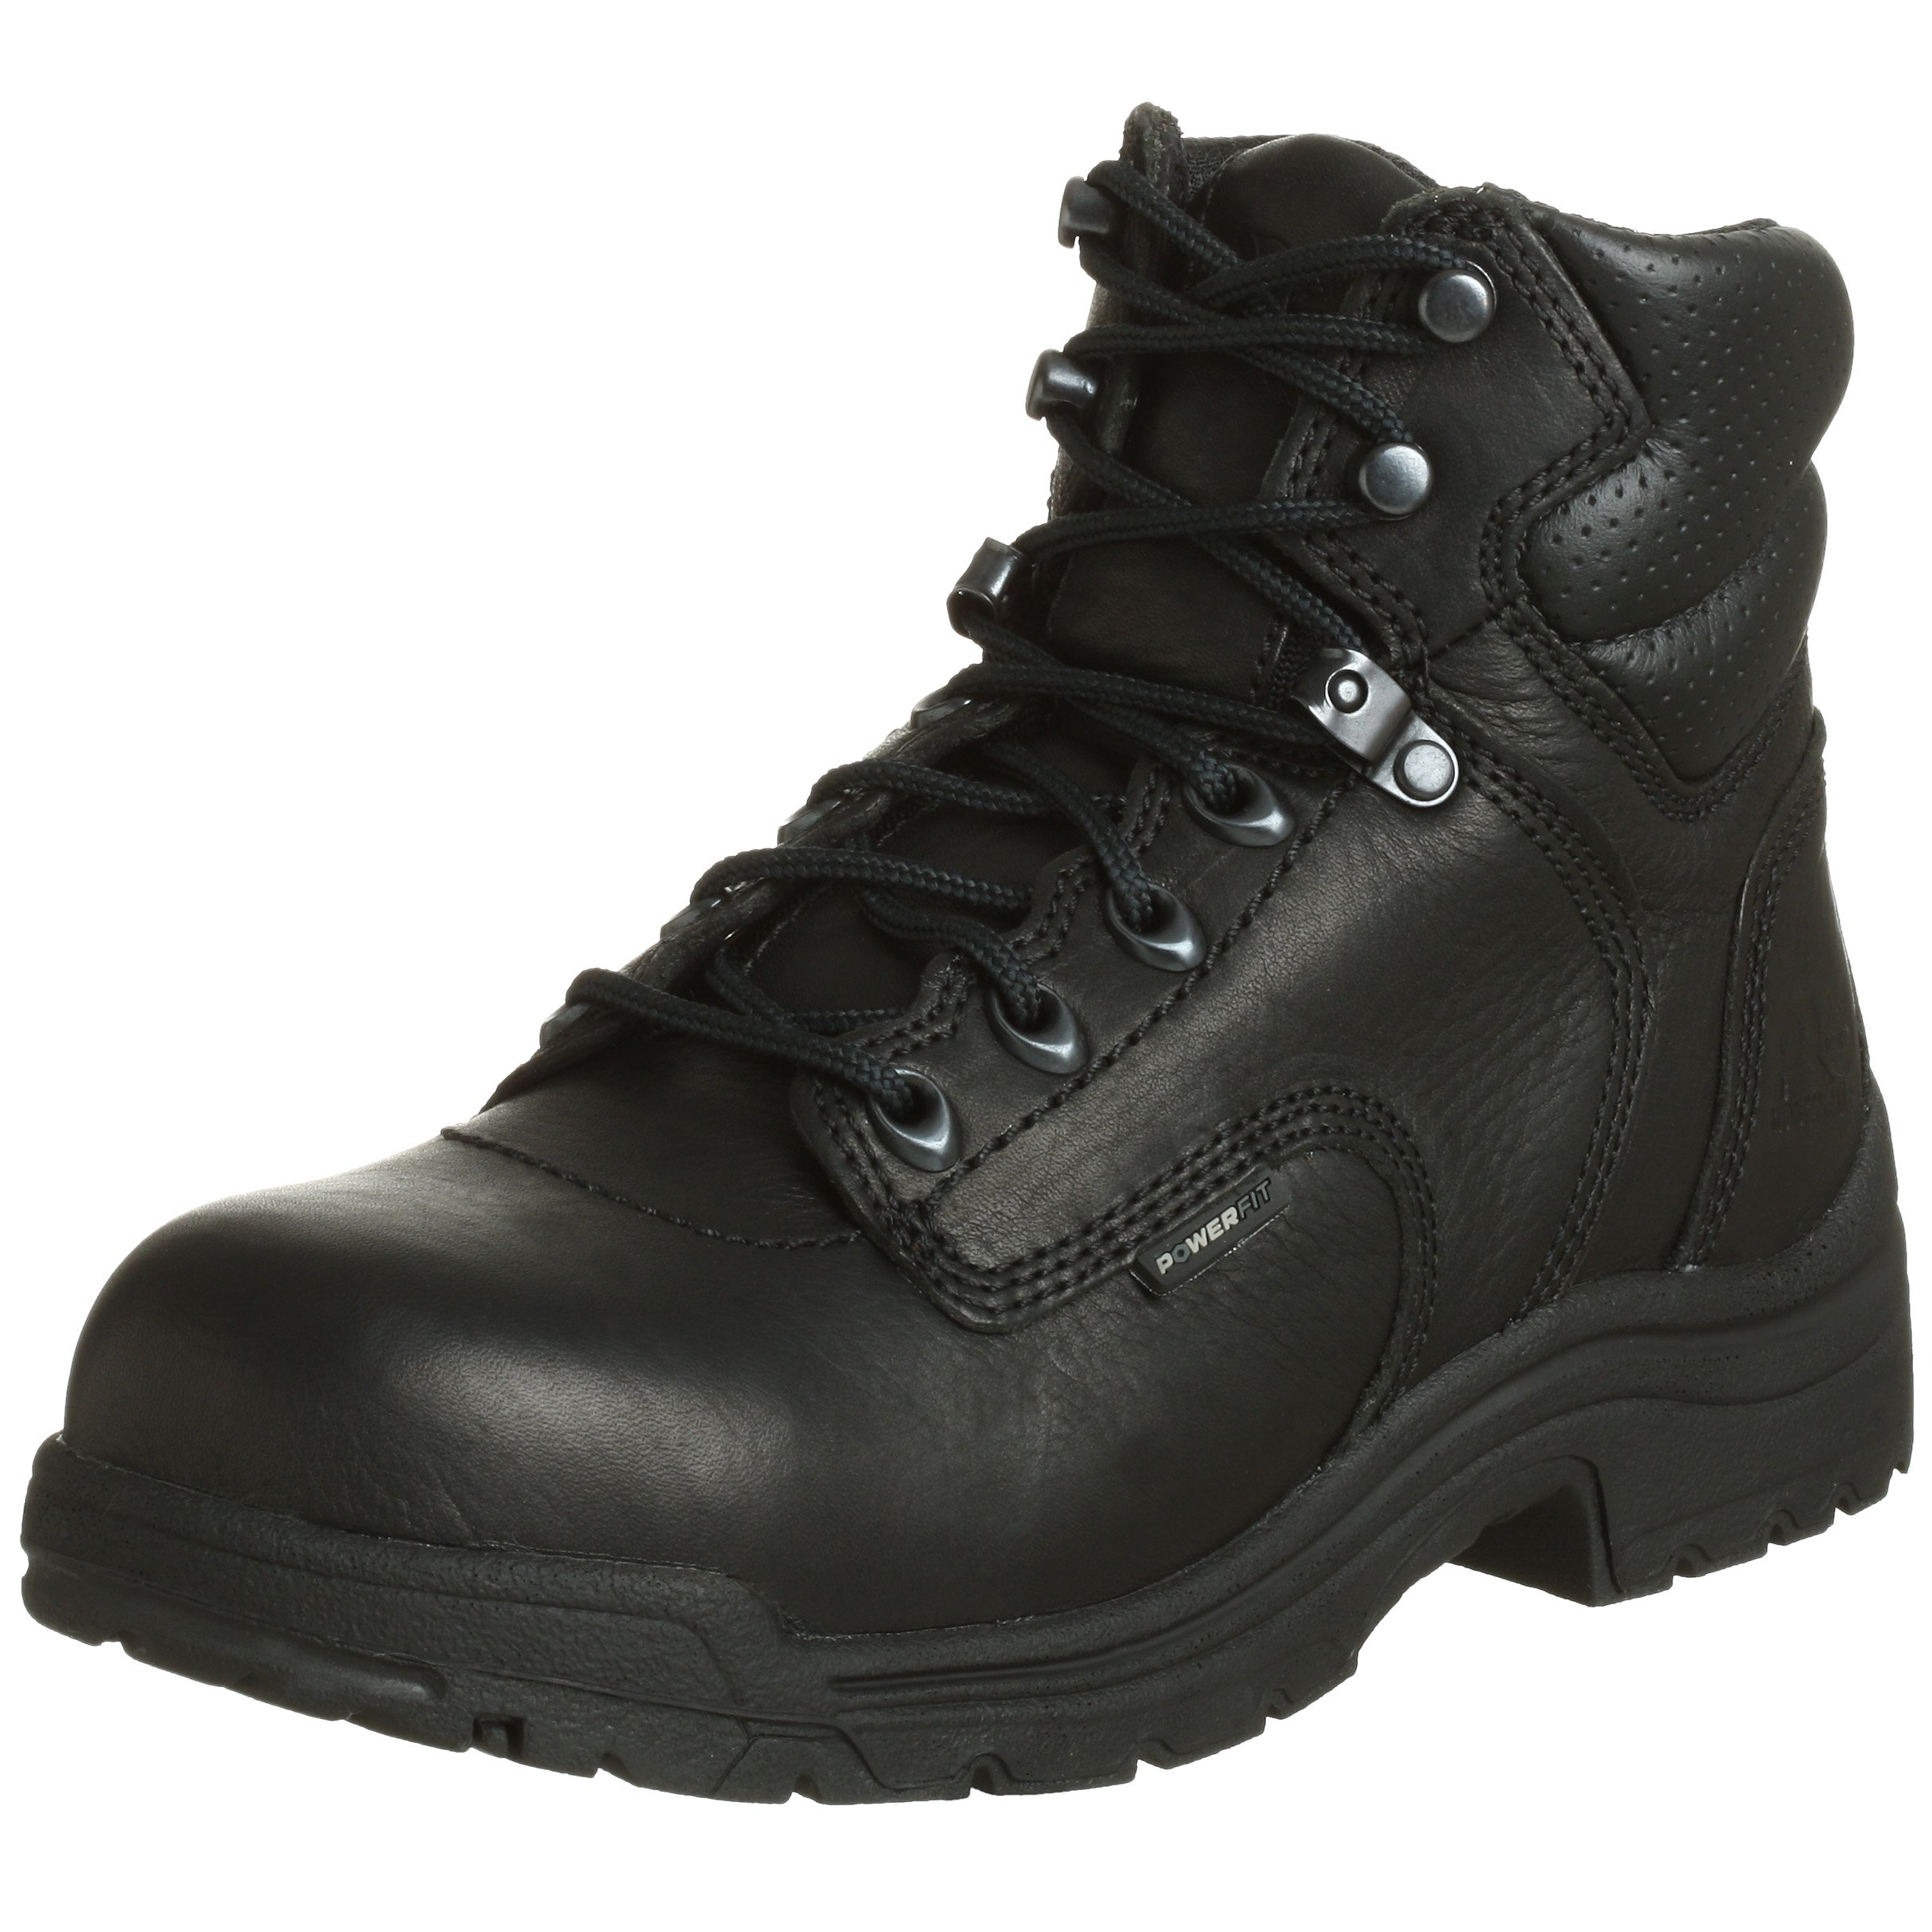 Timberland PRO Women's 72399 Titan 6'' Safety-Toe Boot,Black,8 M by Timberland